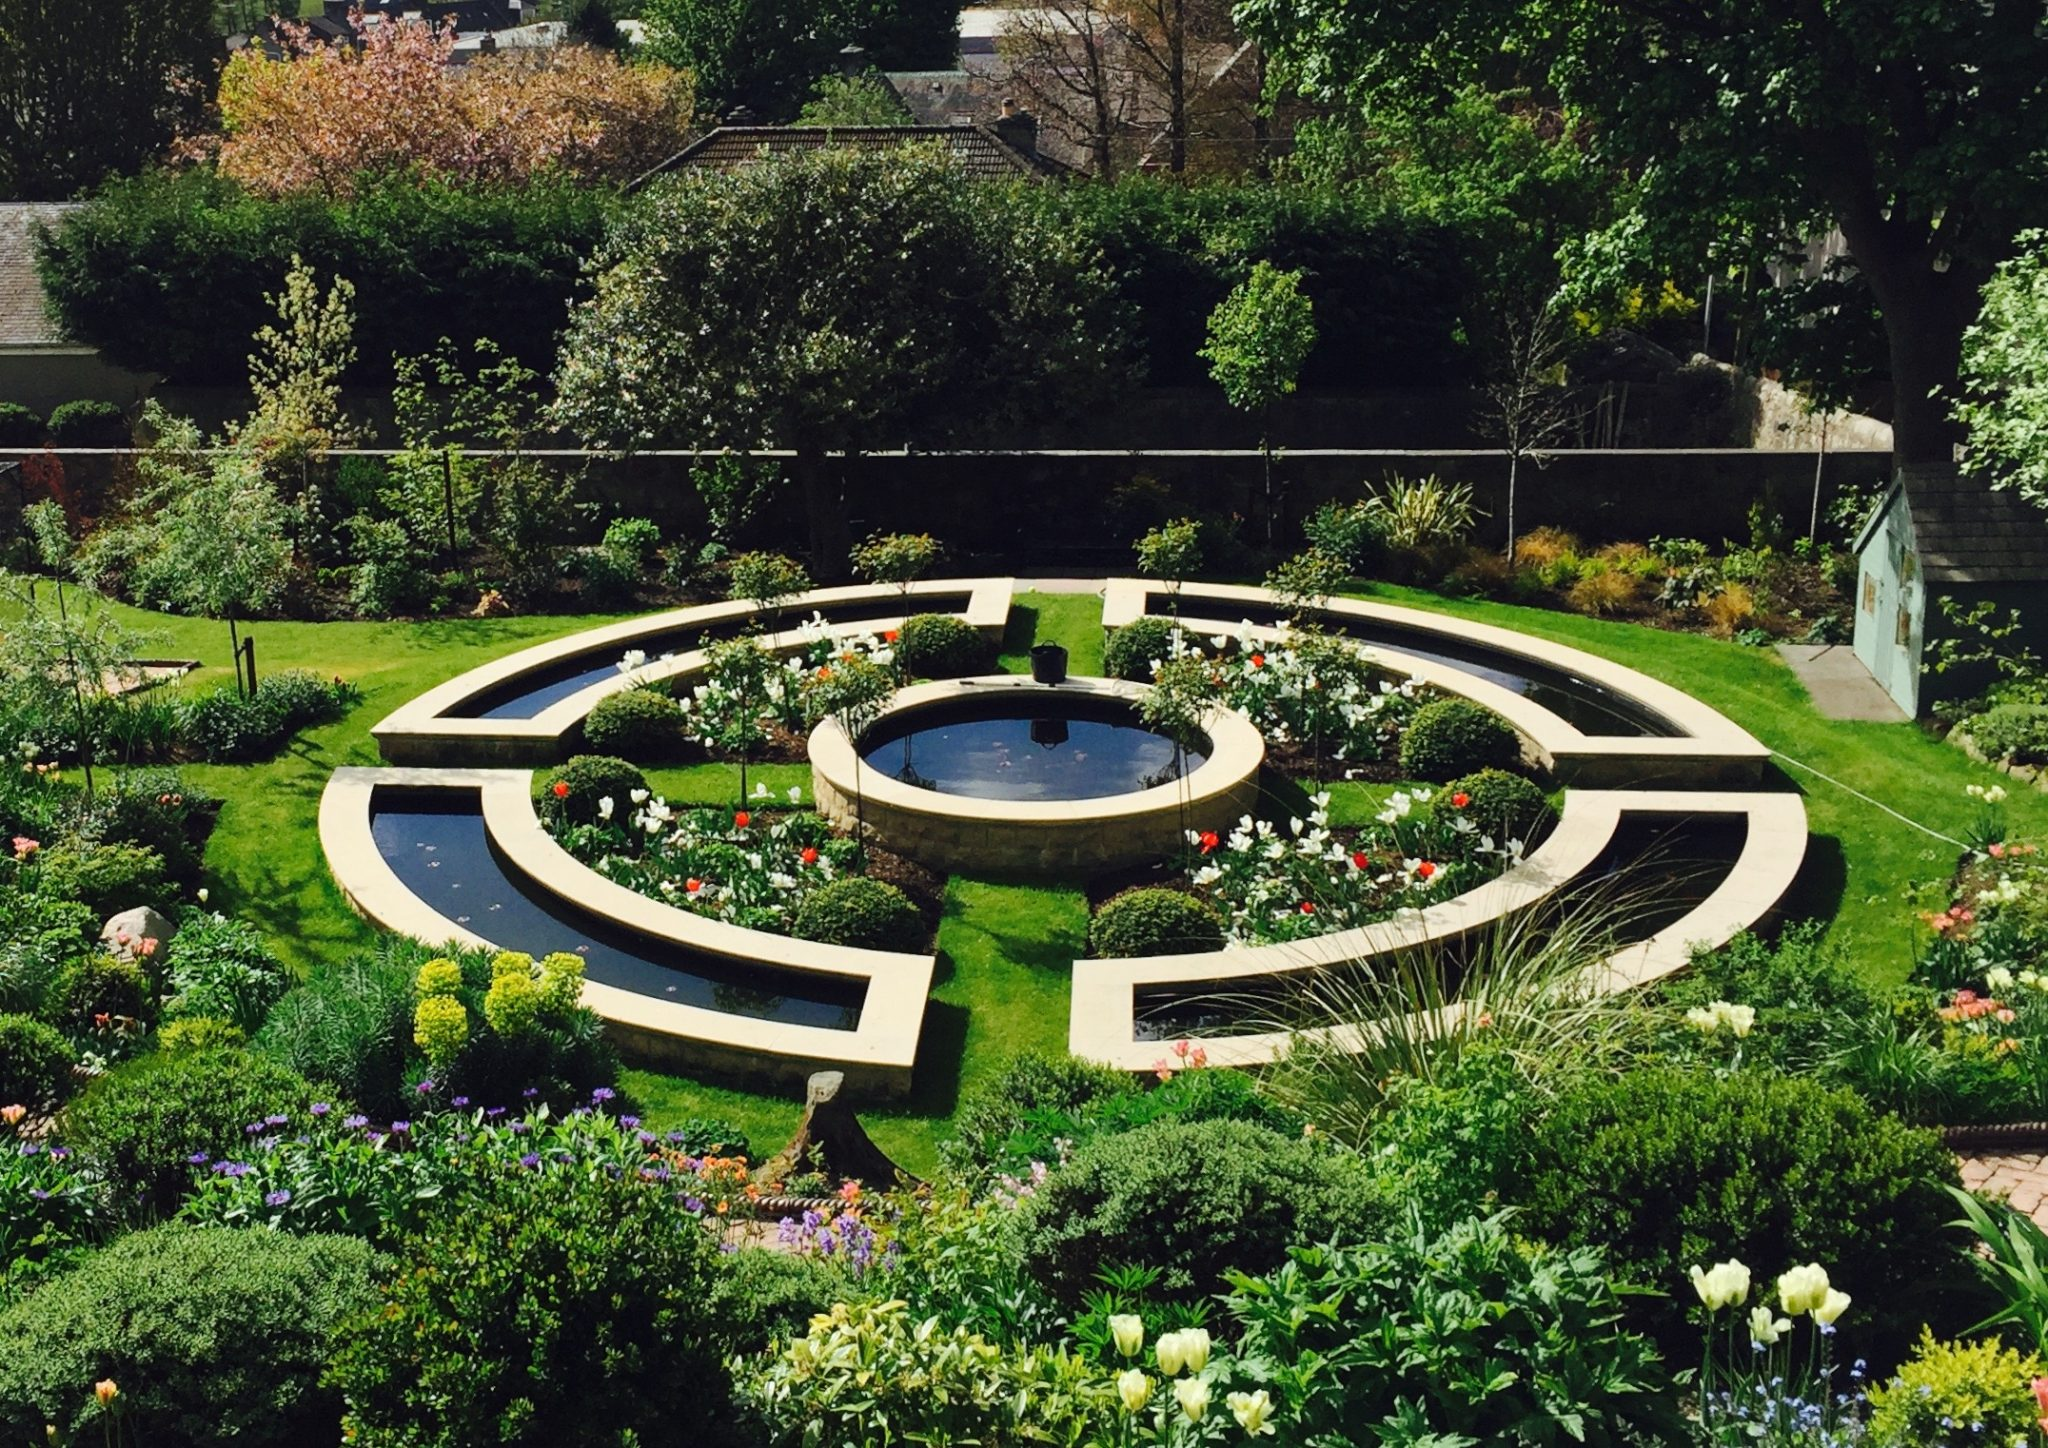 Formal water feature with tulips in full bloom. Designed by Carolyn Grohmann